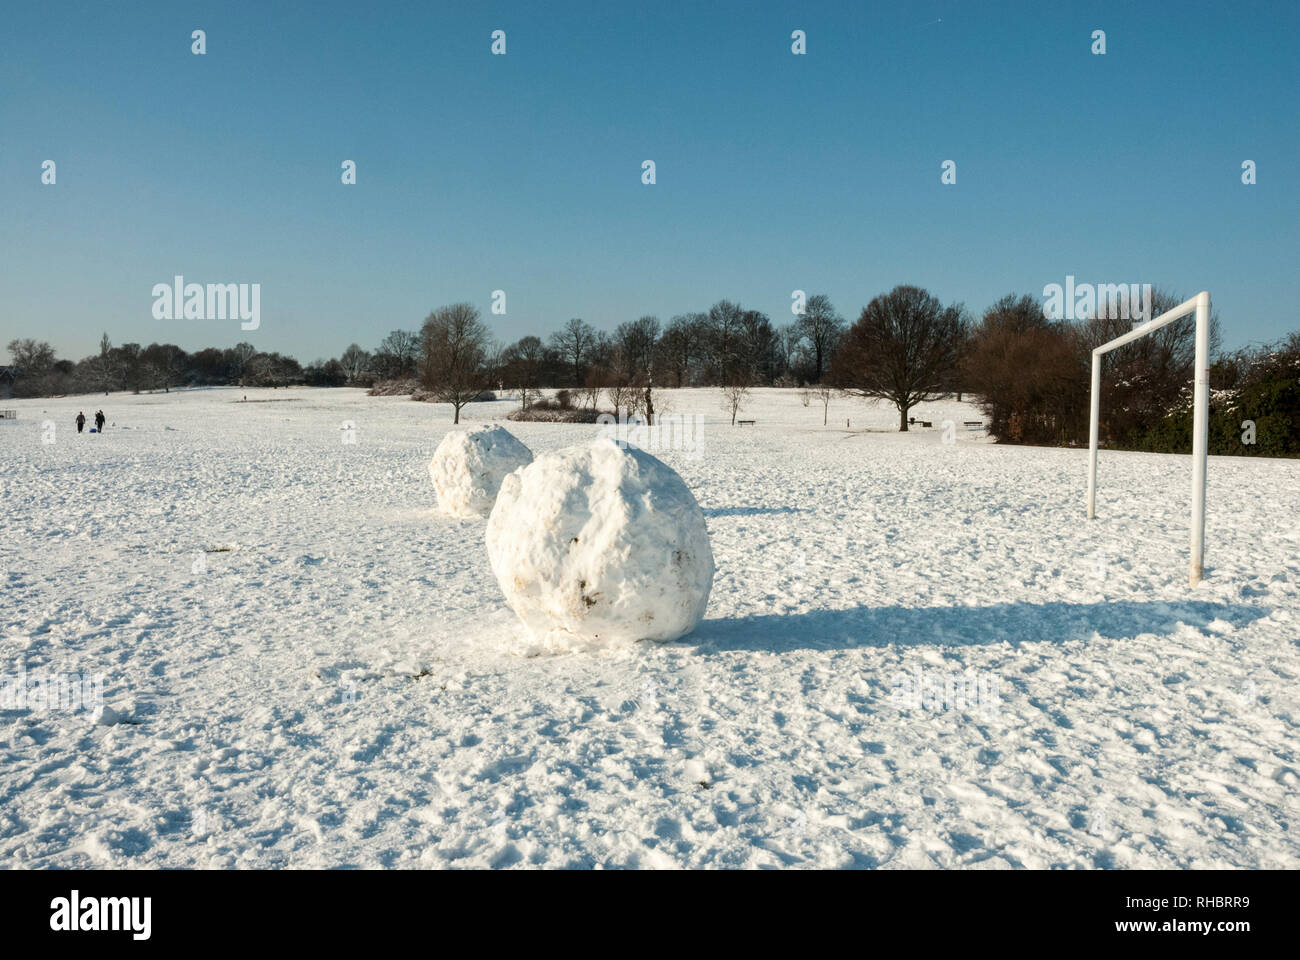 Enormous snowballs in front of an open goal on snow covered sunny Hampstead Heath, play with the concept of scale. - Stock Image